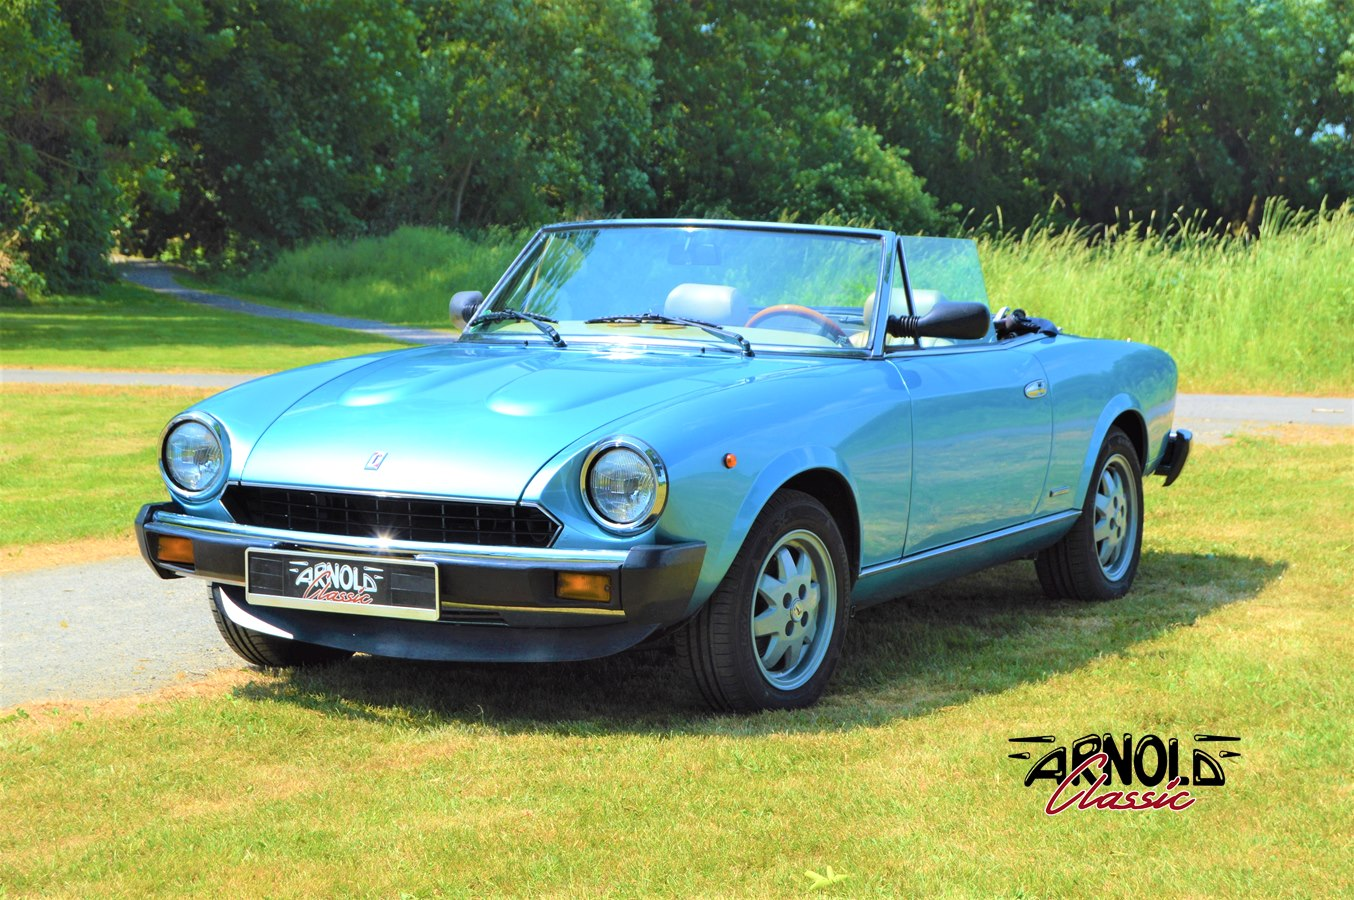 fiat 124 spider ds pininfarina spidereuropa 1985. Black Bedroom Furniture Sets. Home Design Ideas